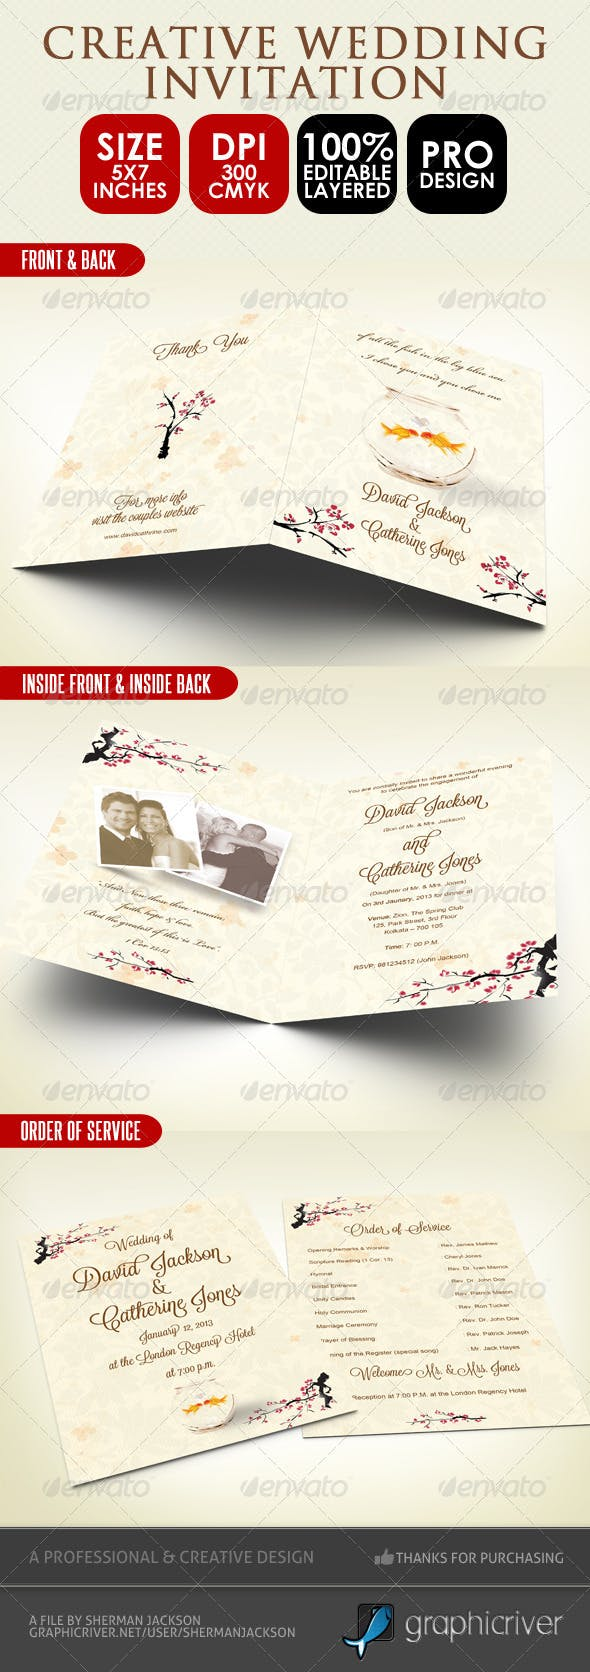 Creative Wedding Card Order Of Service Psd By Shermanjackson